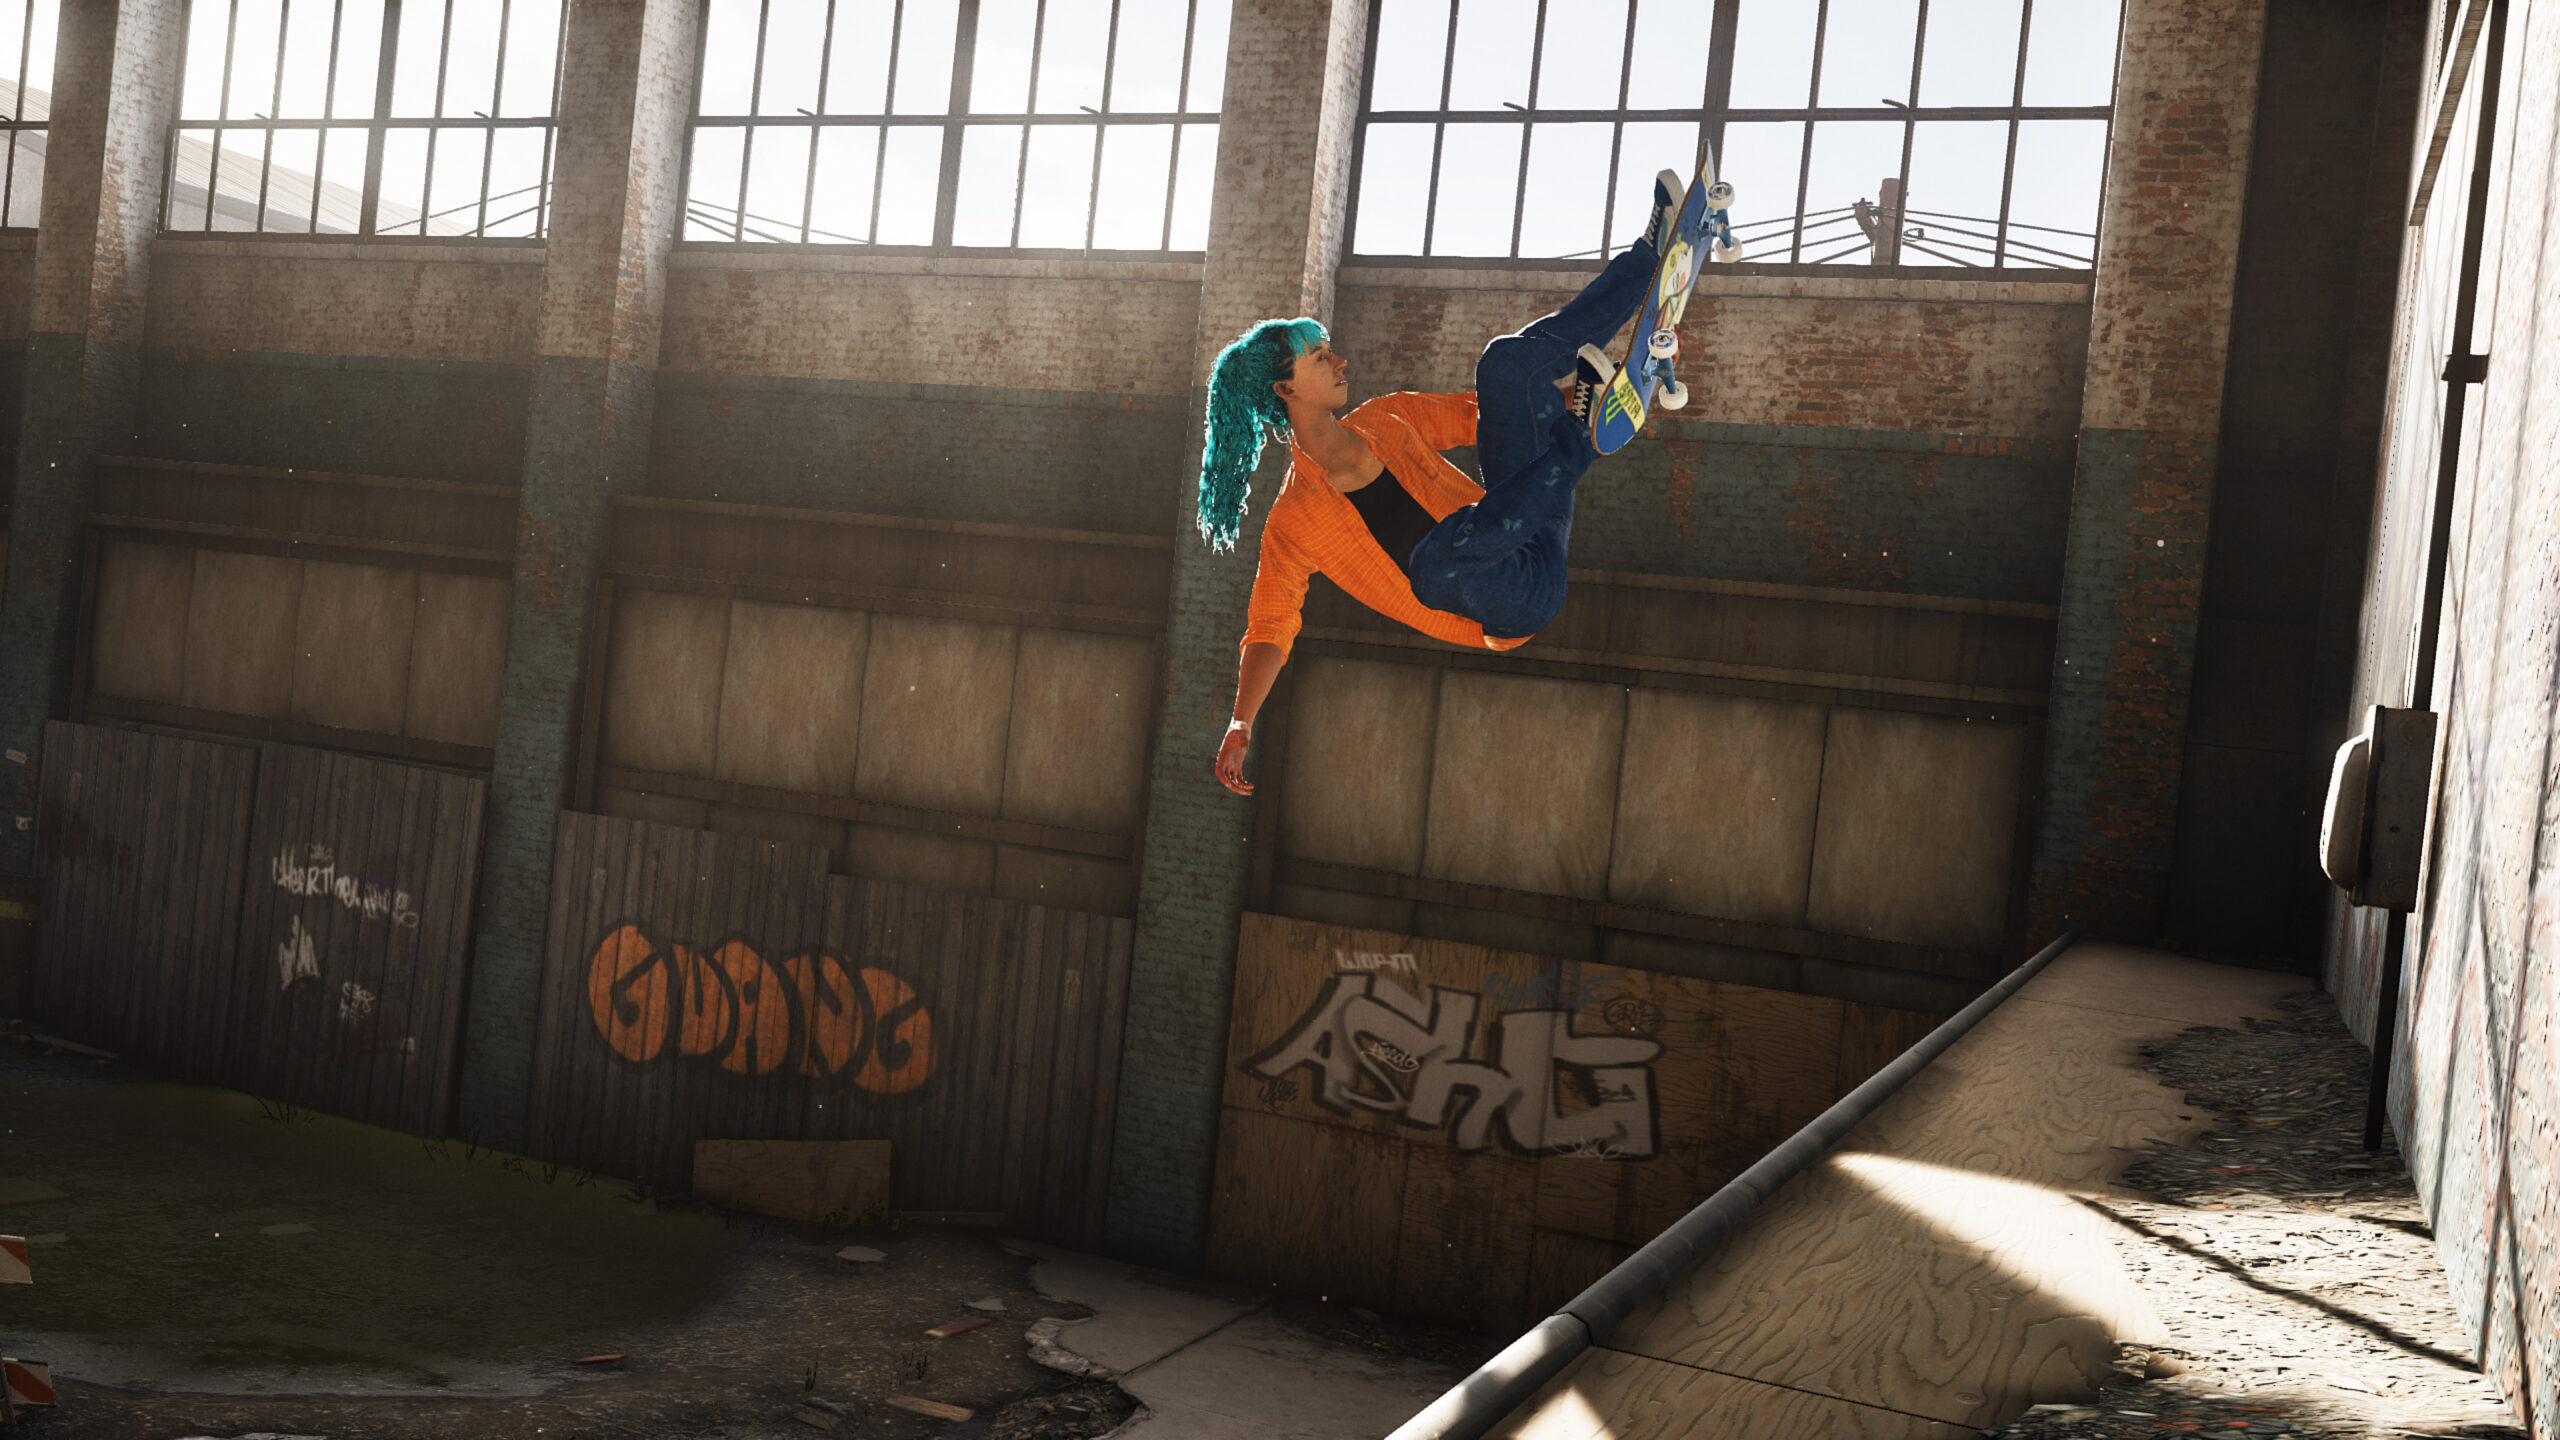 Tony Hawk's Pro Skater Update 1.07 Is Out, Here Are The Patch Notes